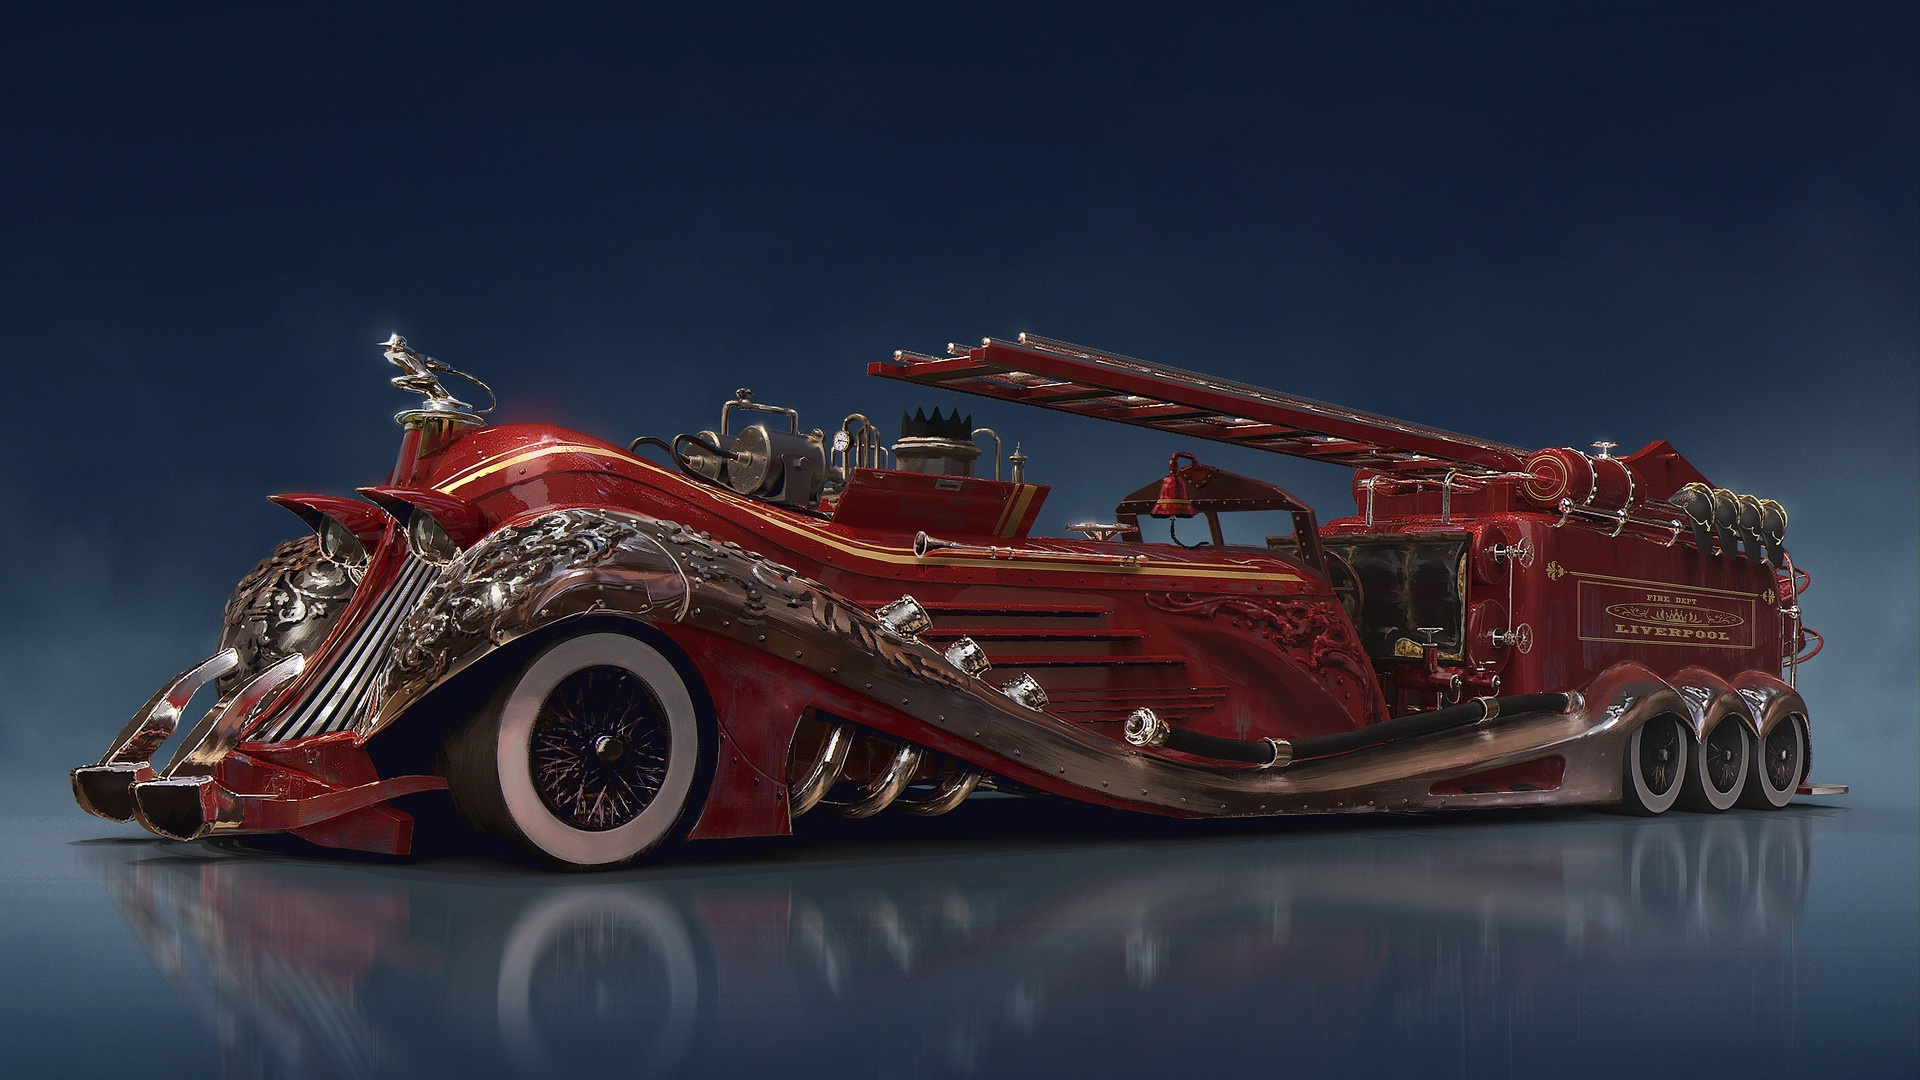 Wallpaper Steampunk Car Concept Red Fire Truck 1920x1080 Full Hd Picture Image